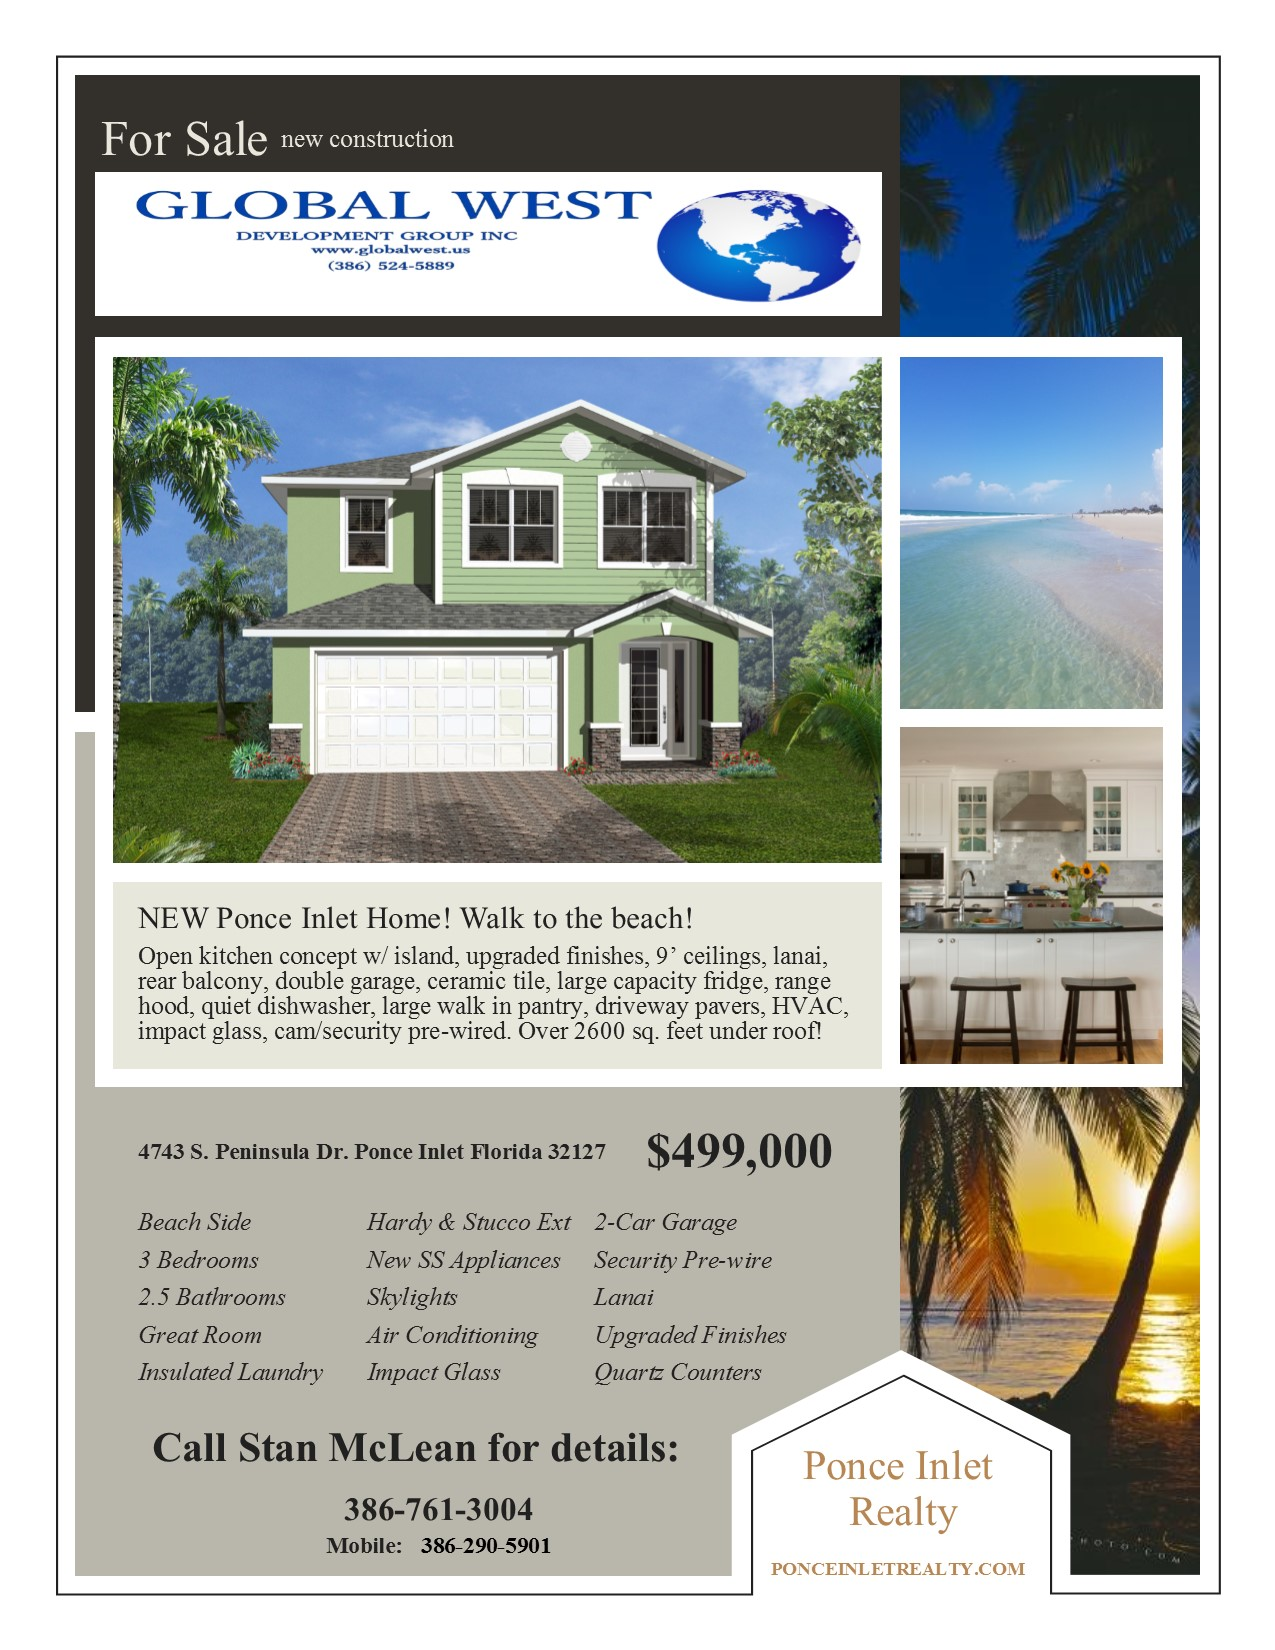 houses for global west development group inc 386 524 5889 peninsula brochure